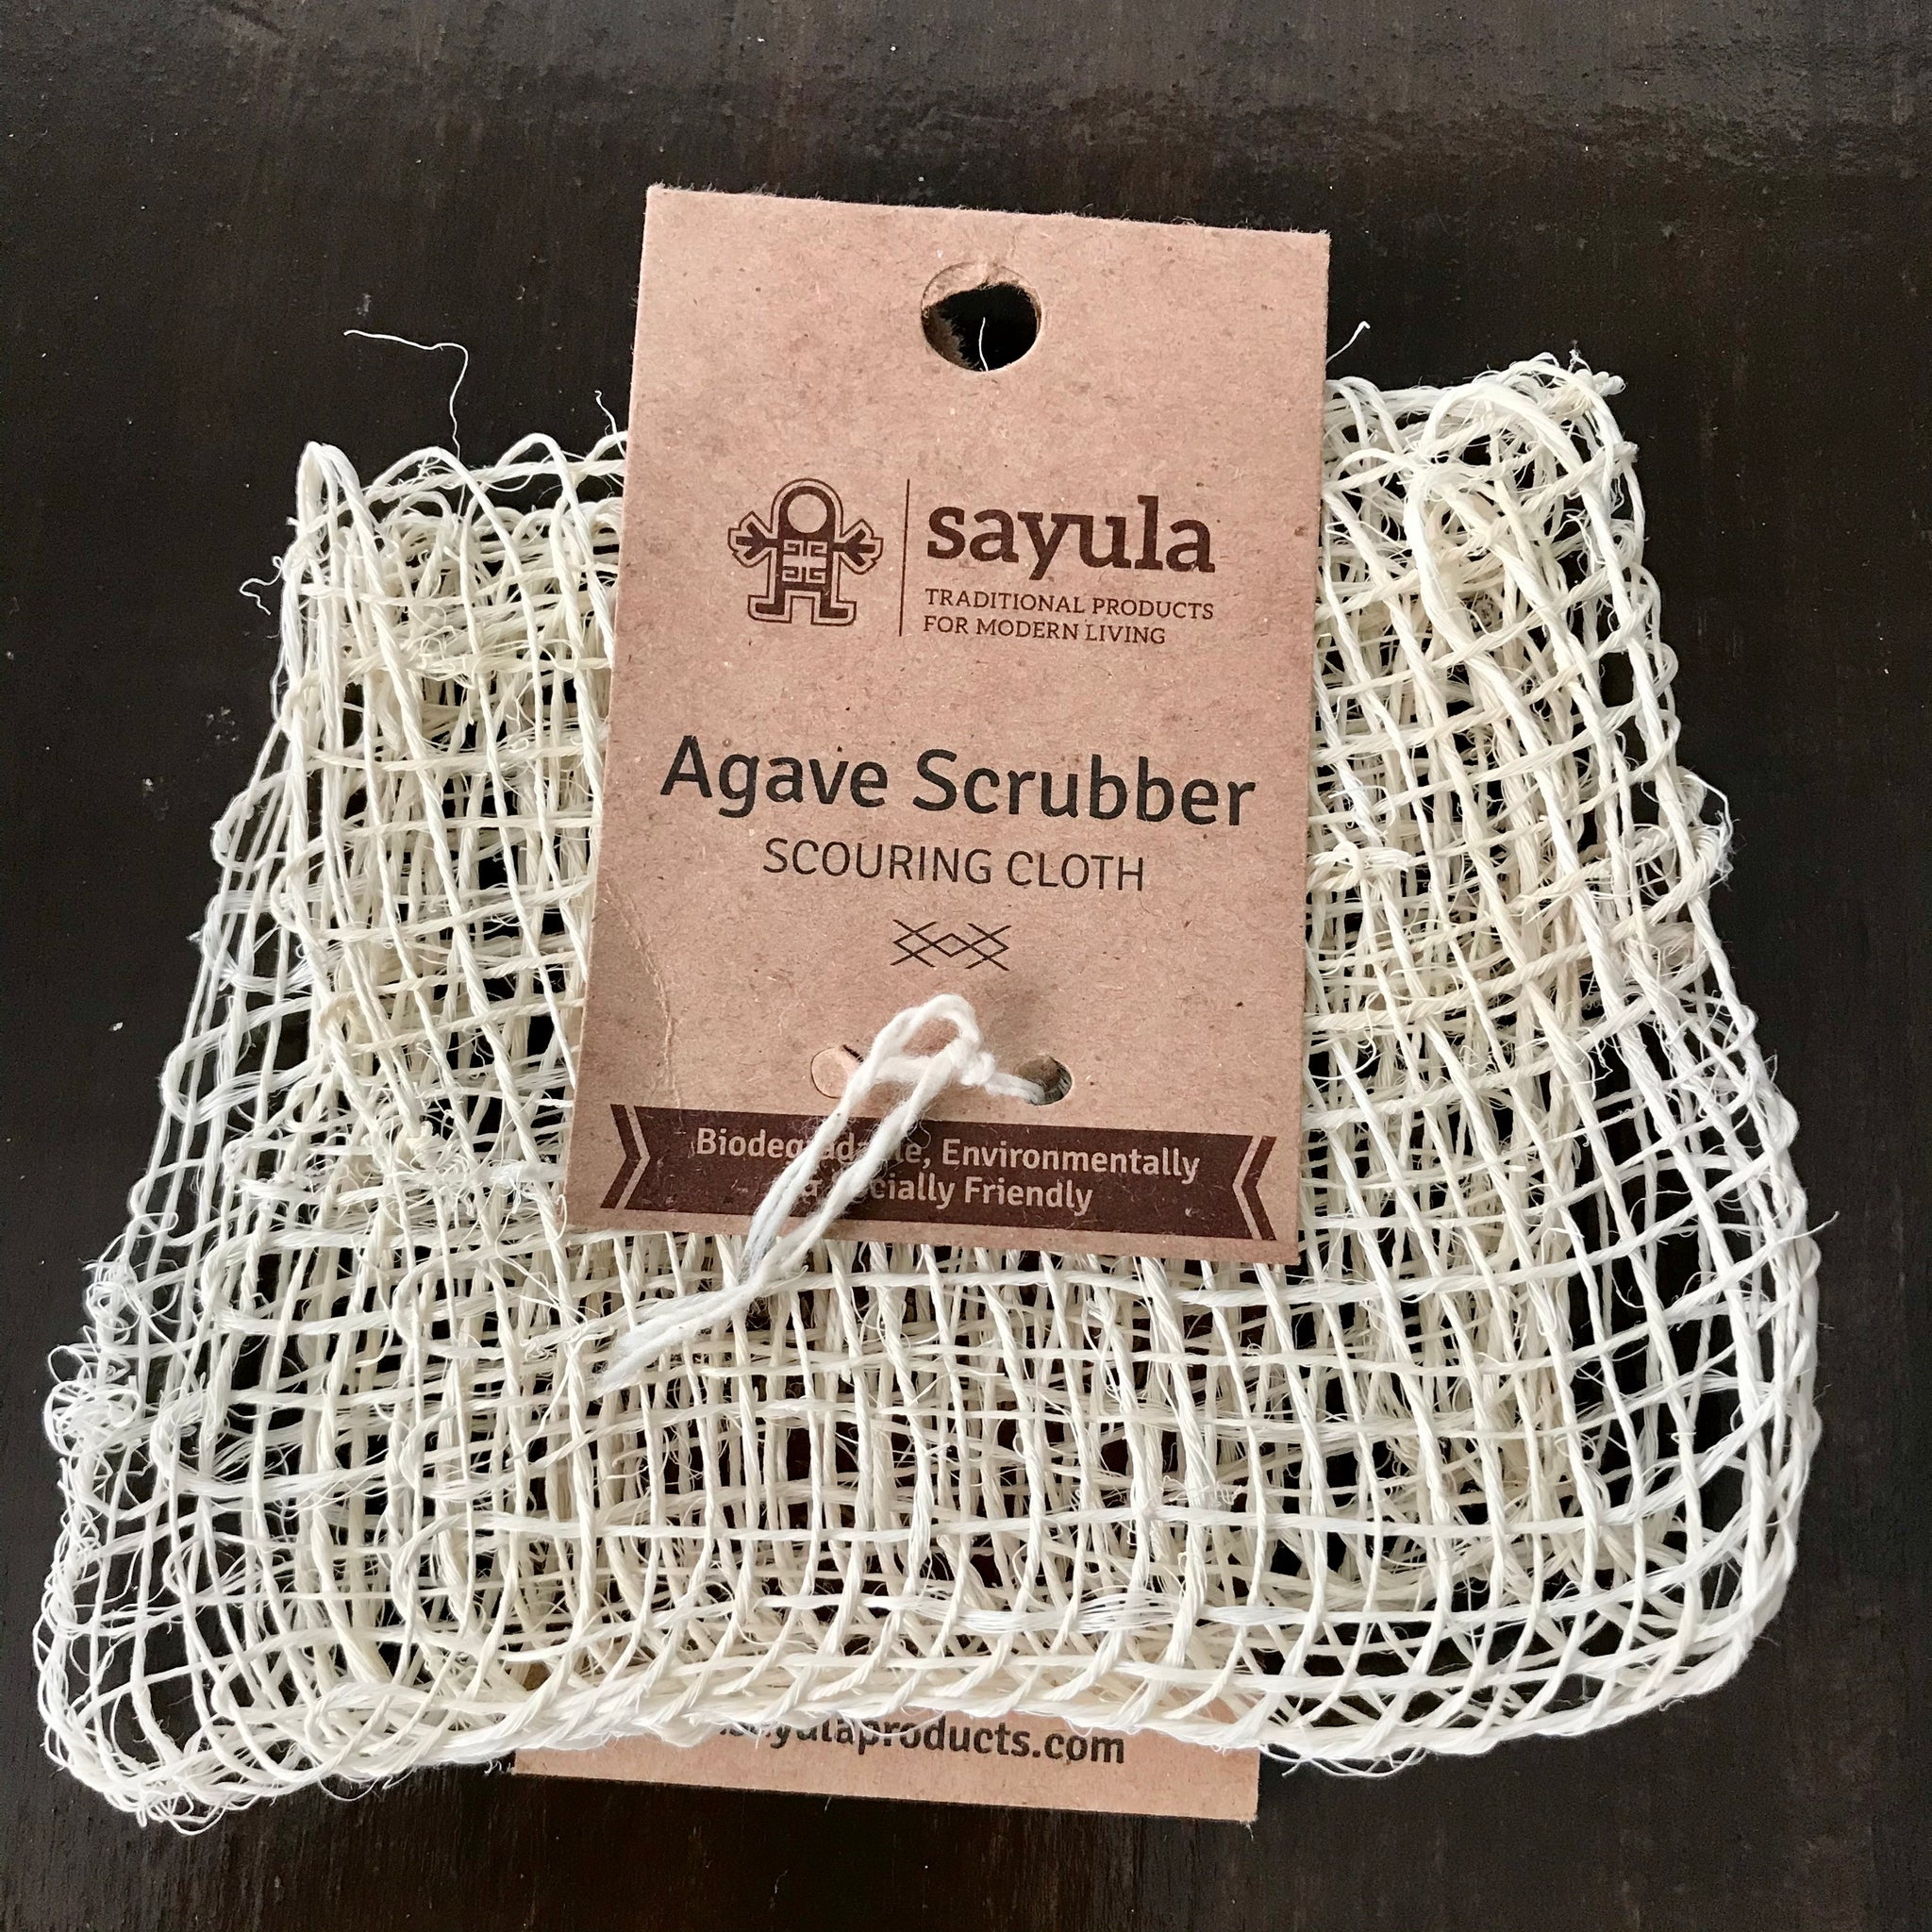 biodegradable sayula dish scrubber scouring cloth